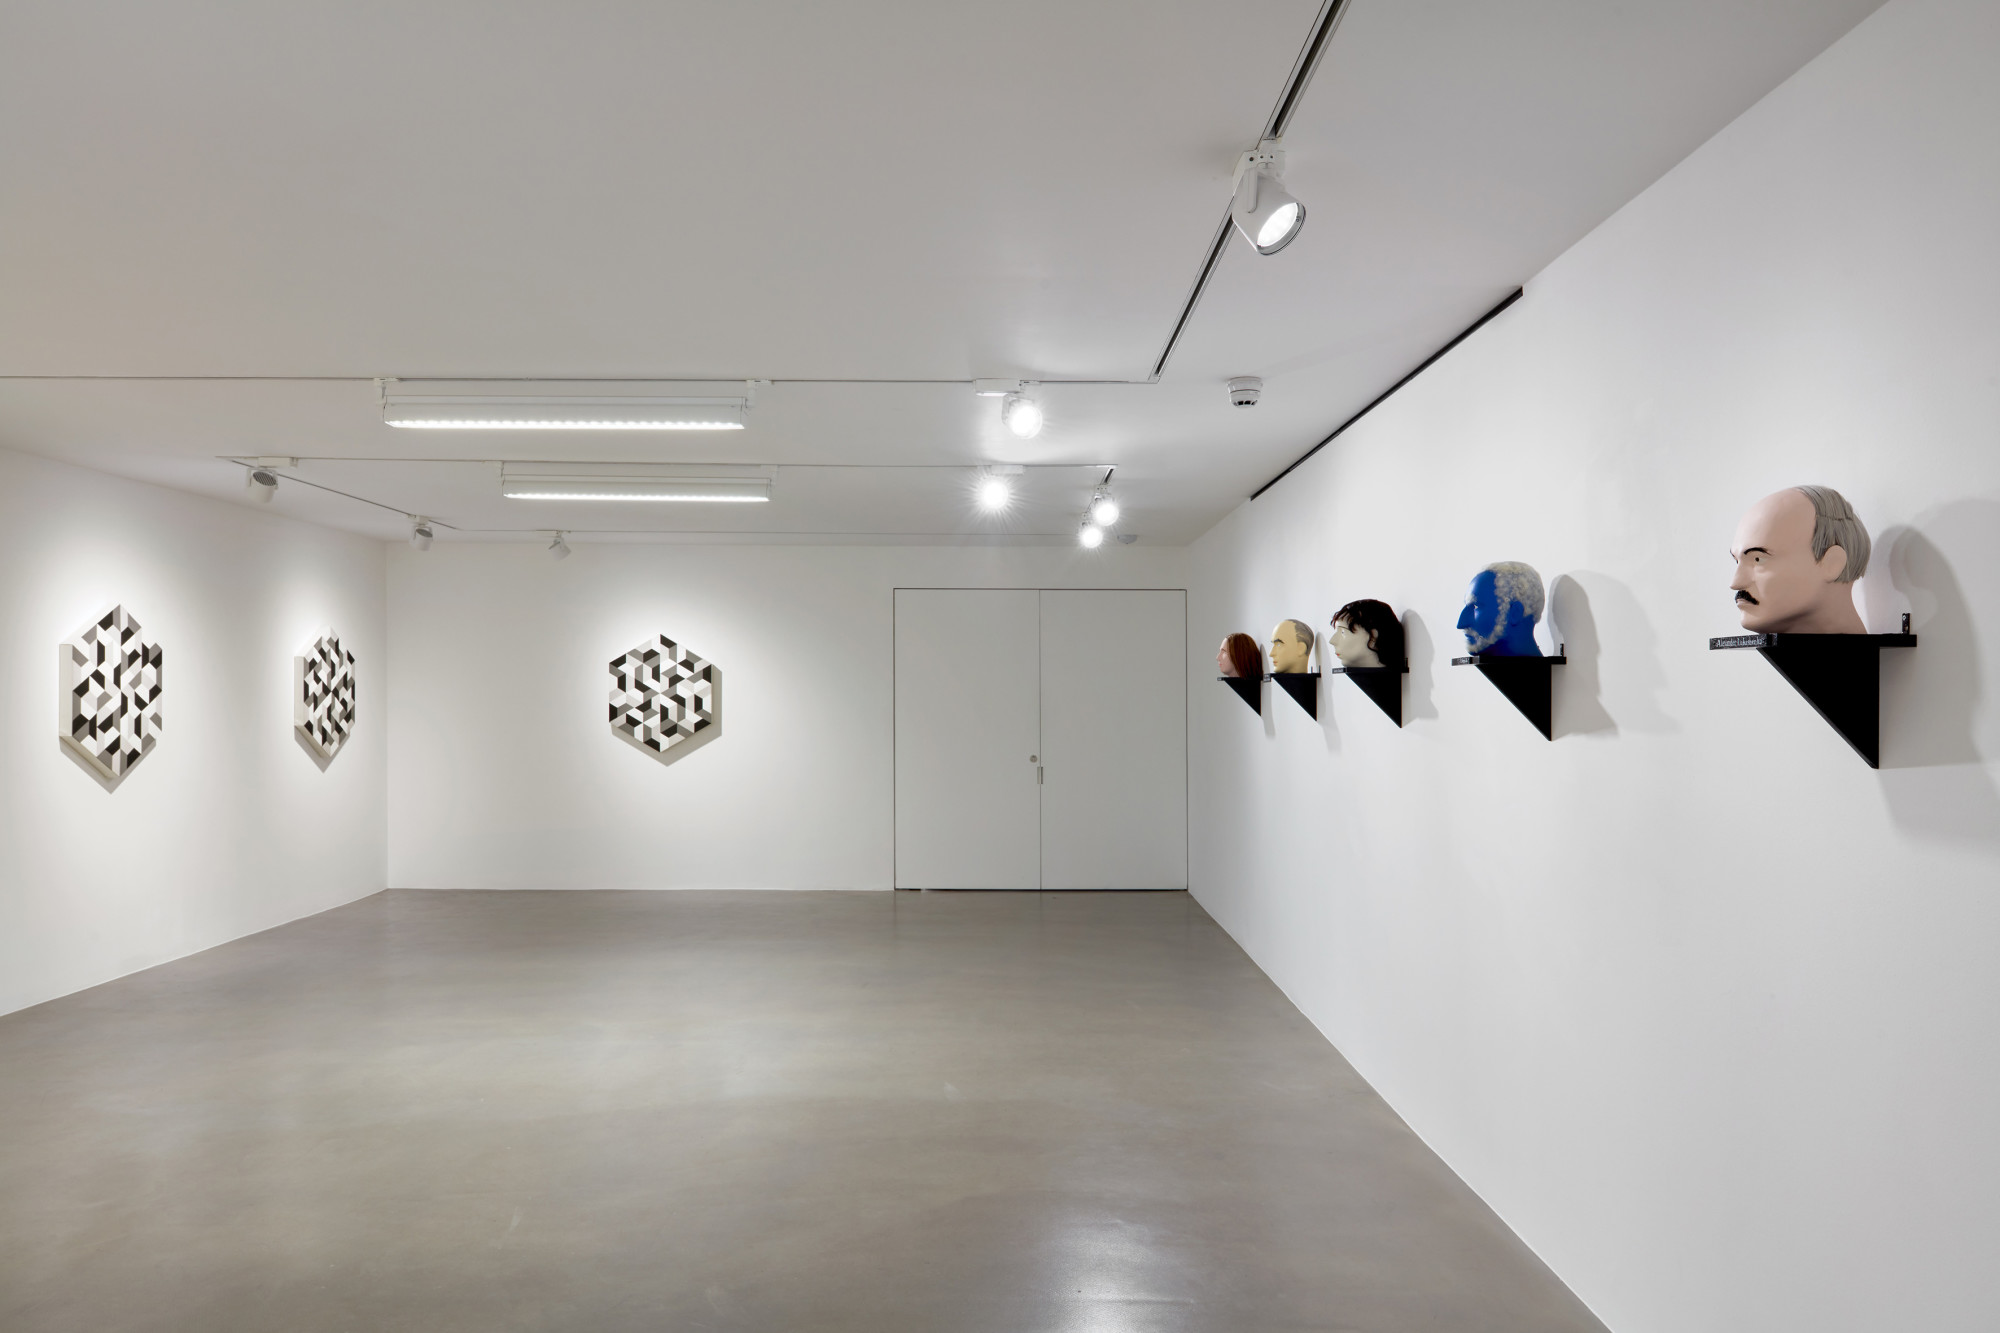 <p>Installation view, dépendance, Christian Flamm, Jos de Gruyter & Harald Thys, 1 Davies Street, 2020</p><p>Photo by Robert Glowacki</p>